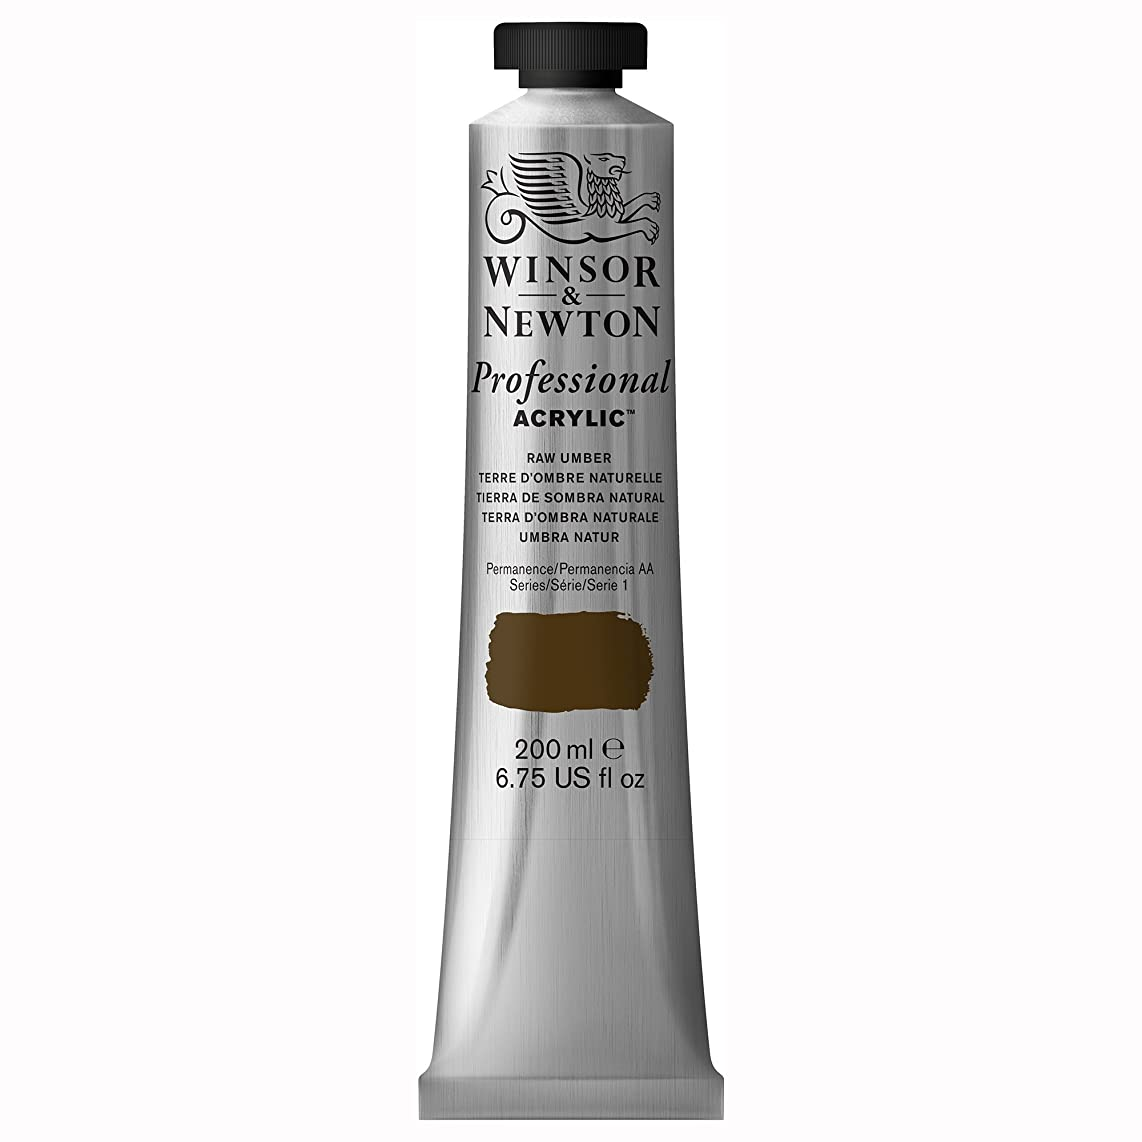 Winsor & Newton Professional Acrylic Color Paint, 200ml Tube, Raw Umber